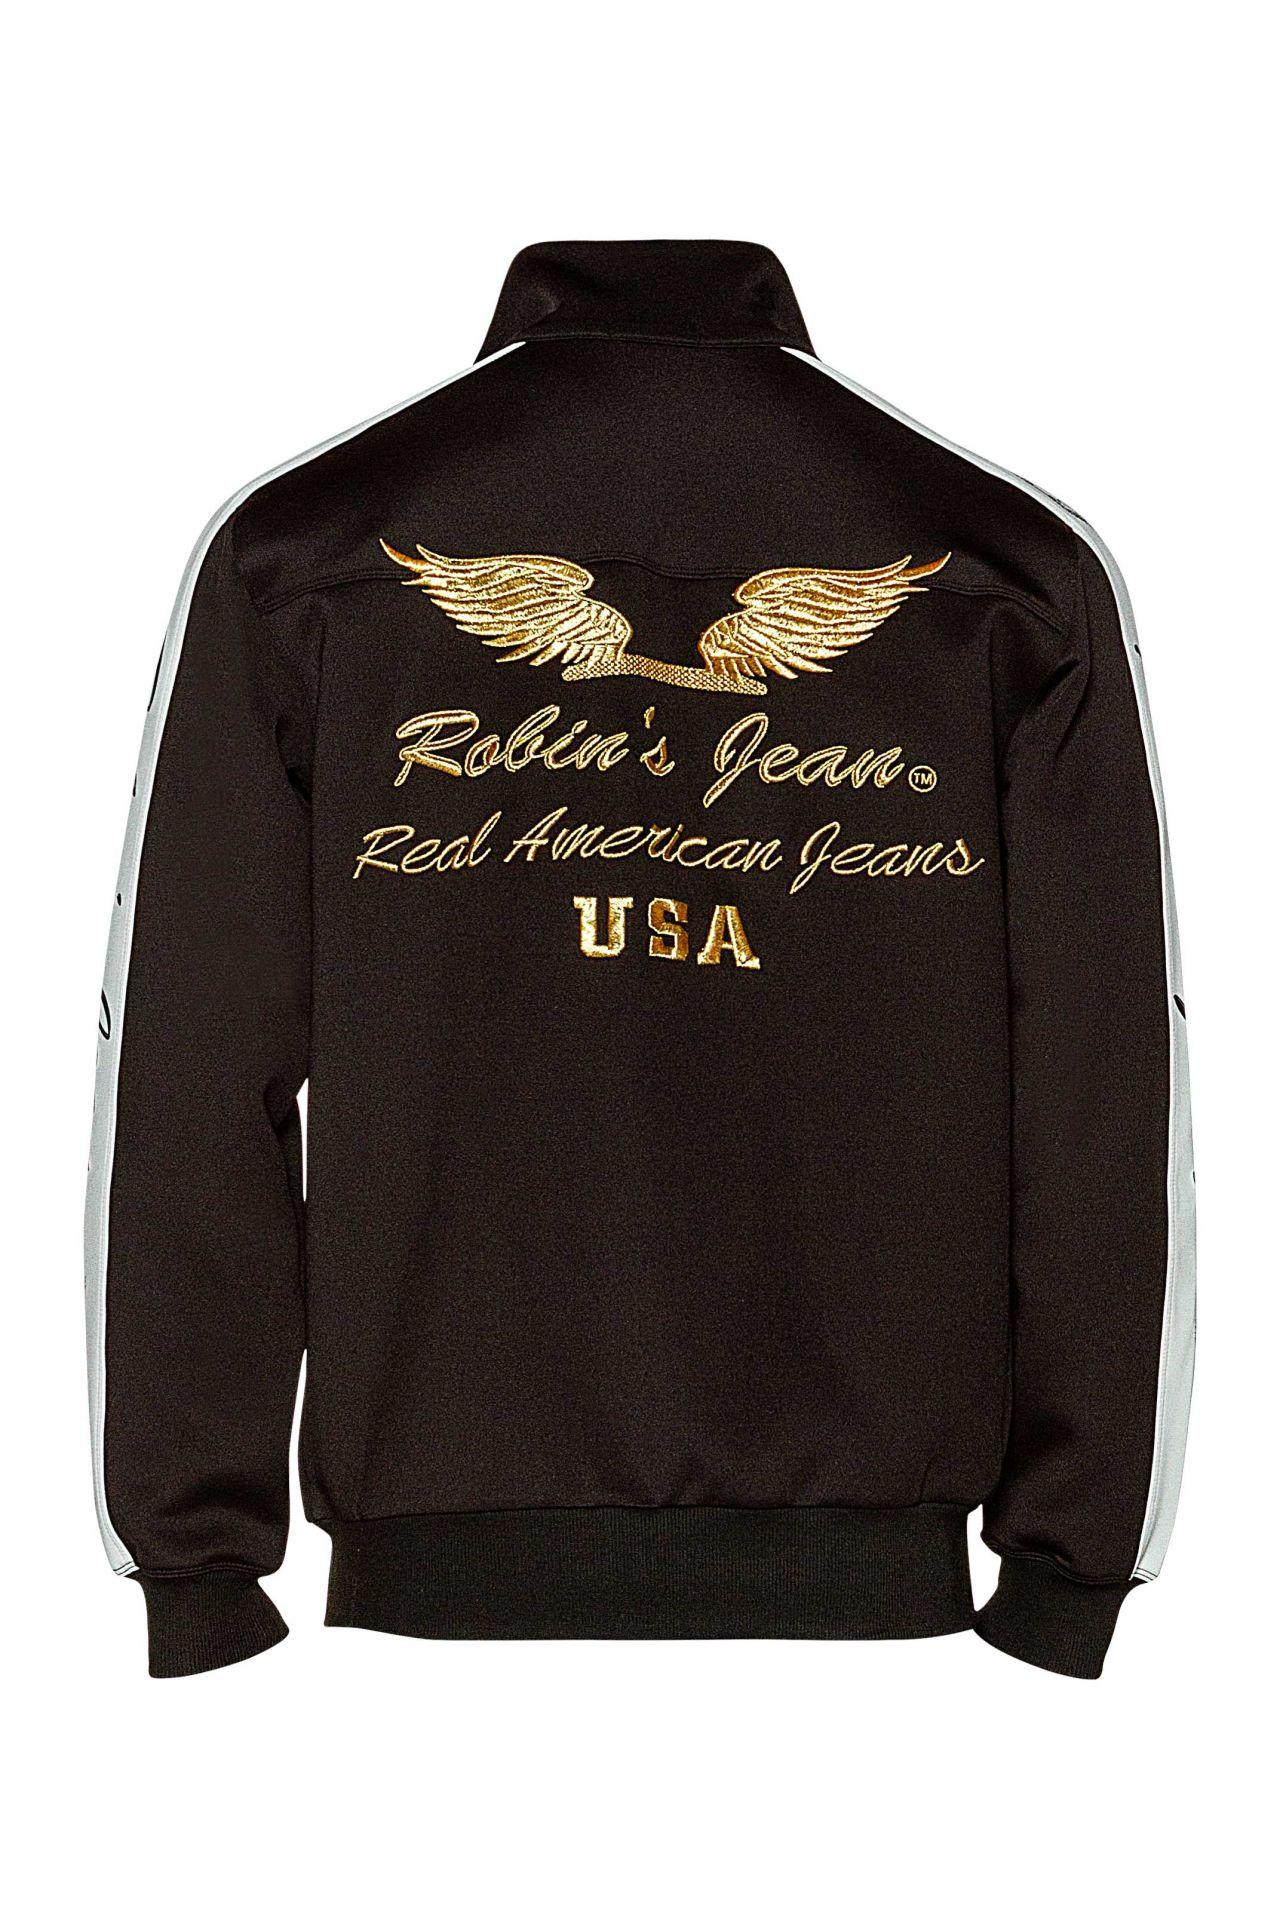 ROBIN TEAM TRACK JACKET W PATCHES IN BLACK